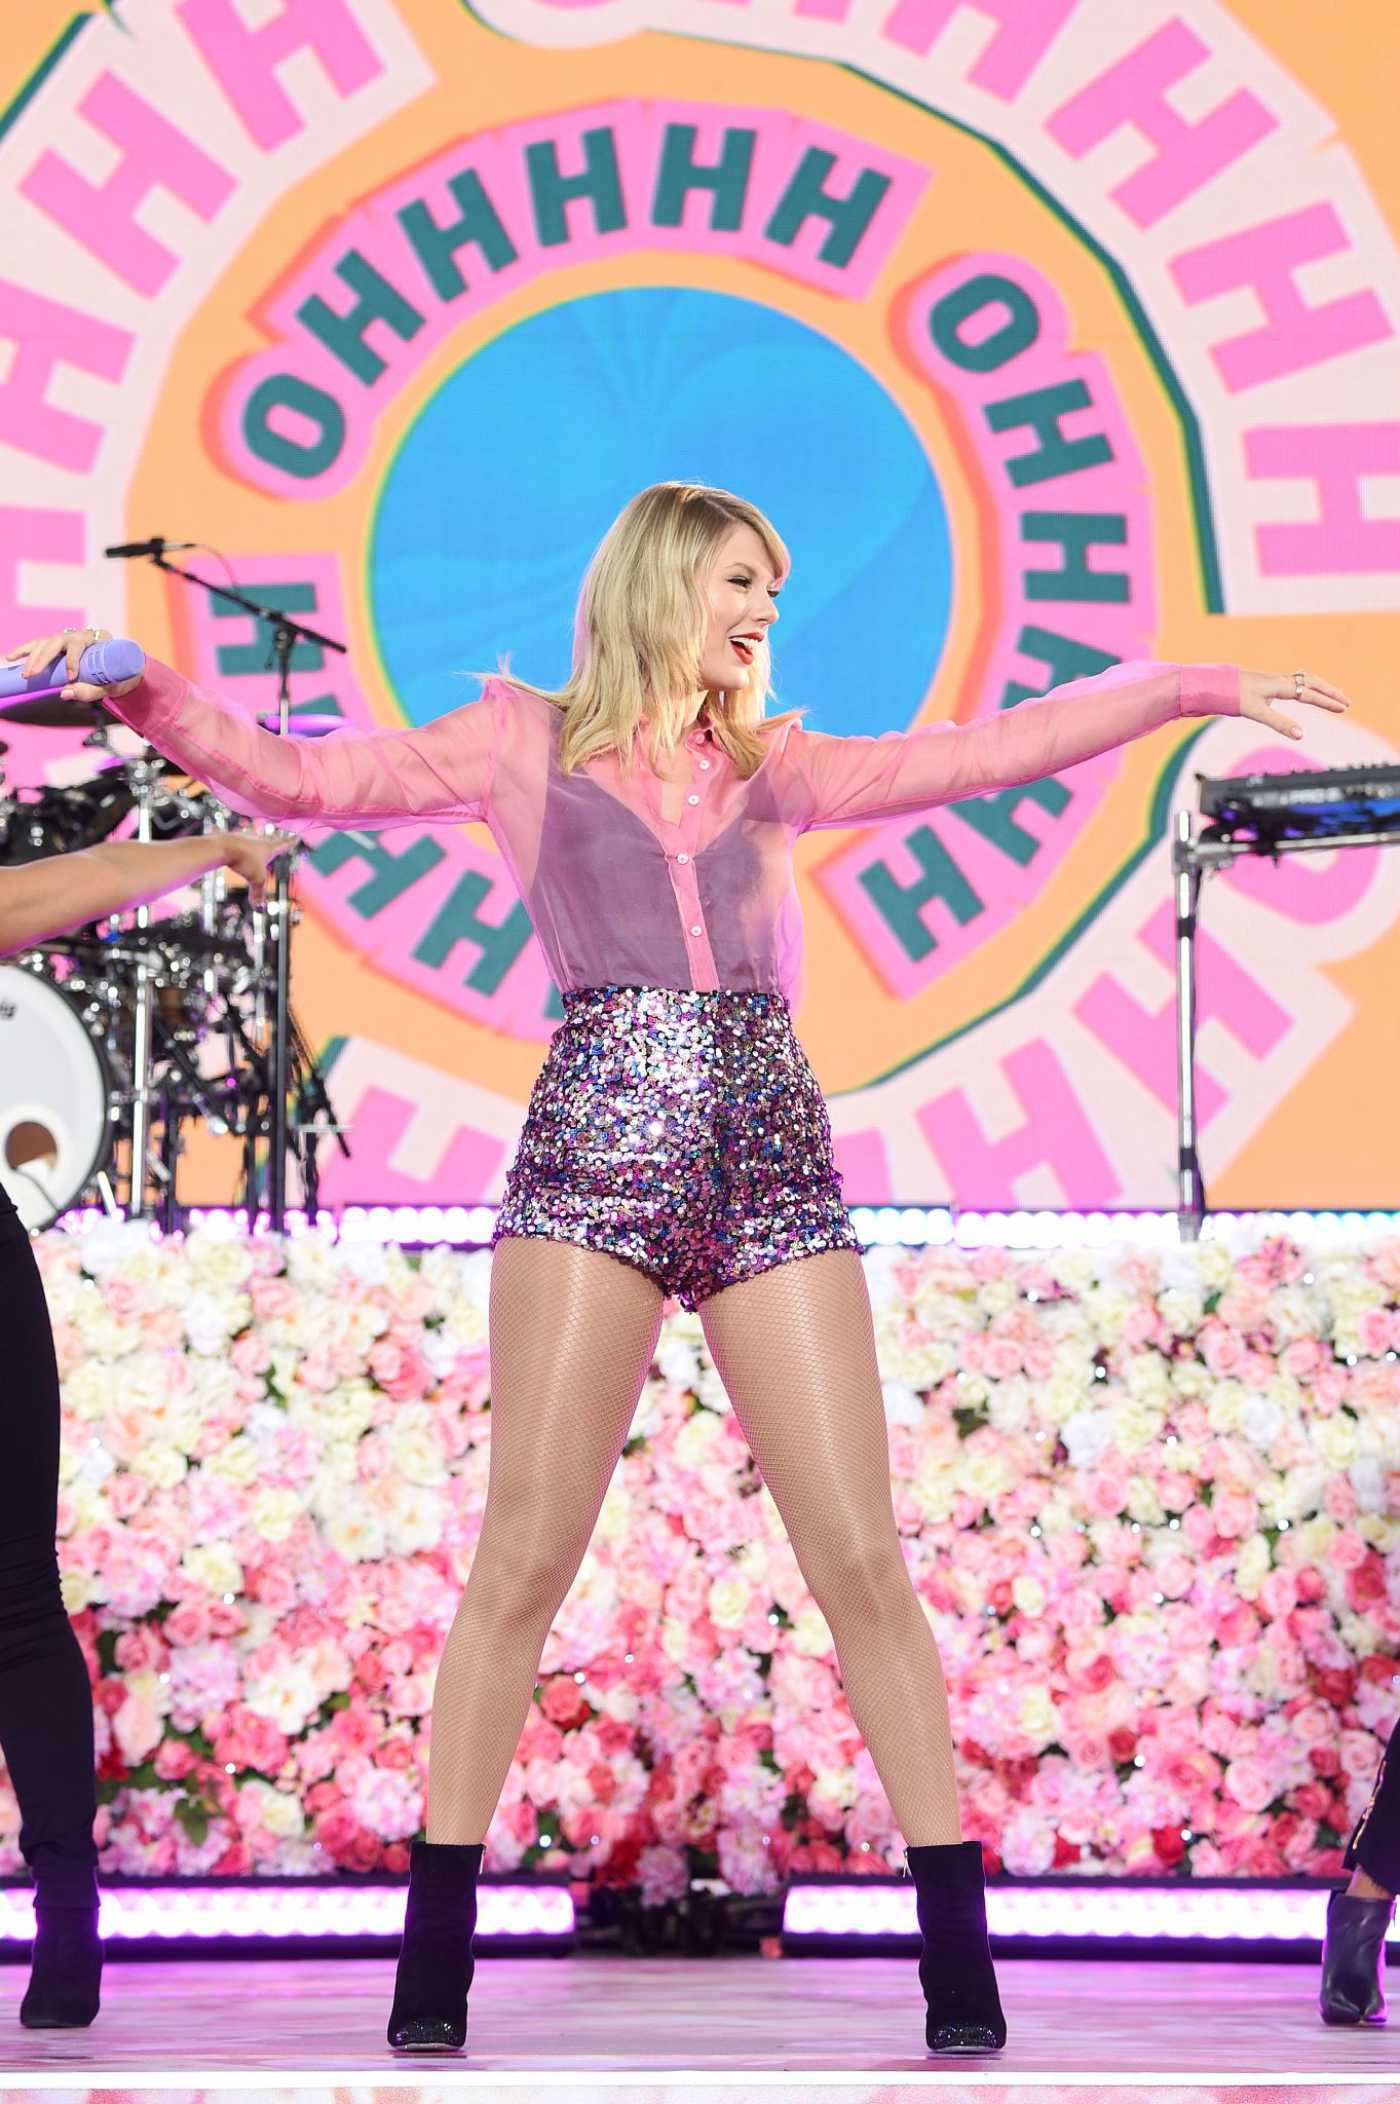 Taylor Swift Performs on Good Morning America at Rumsey Playfield in Central Park 08/22/2019